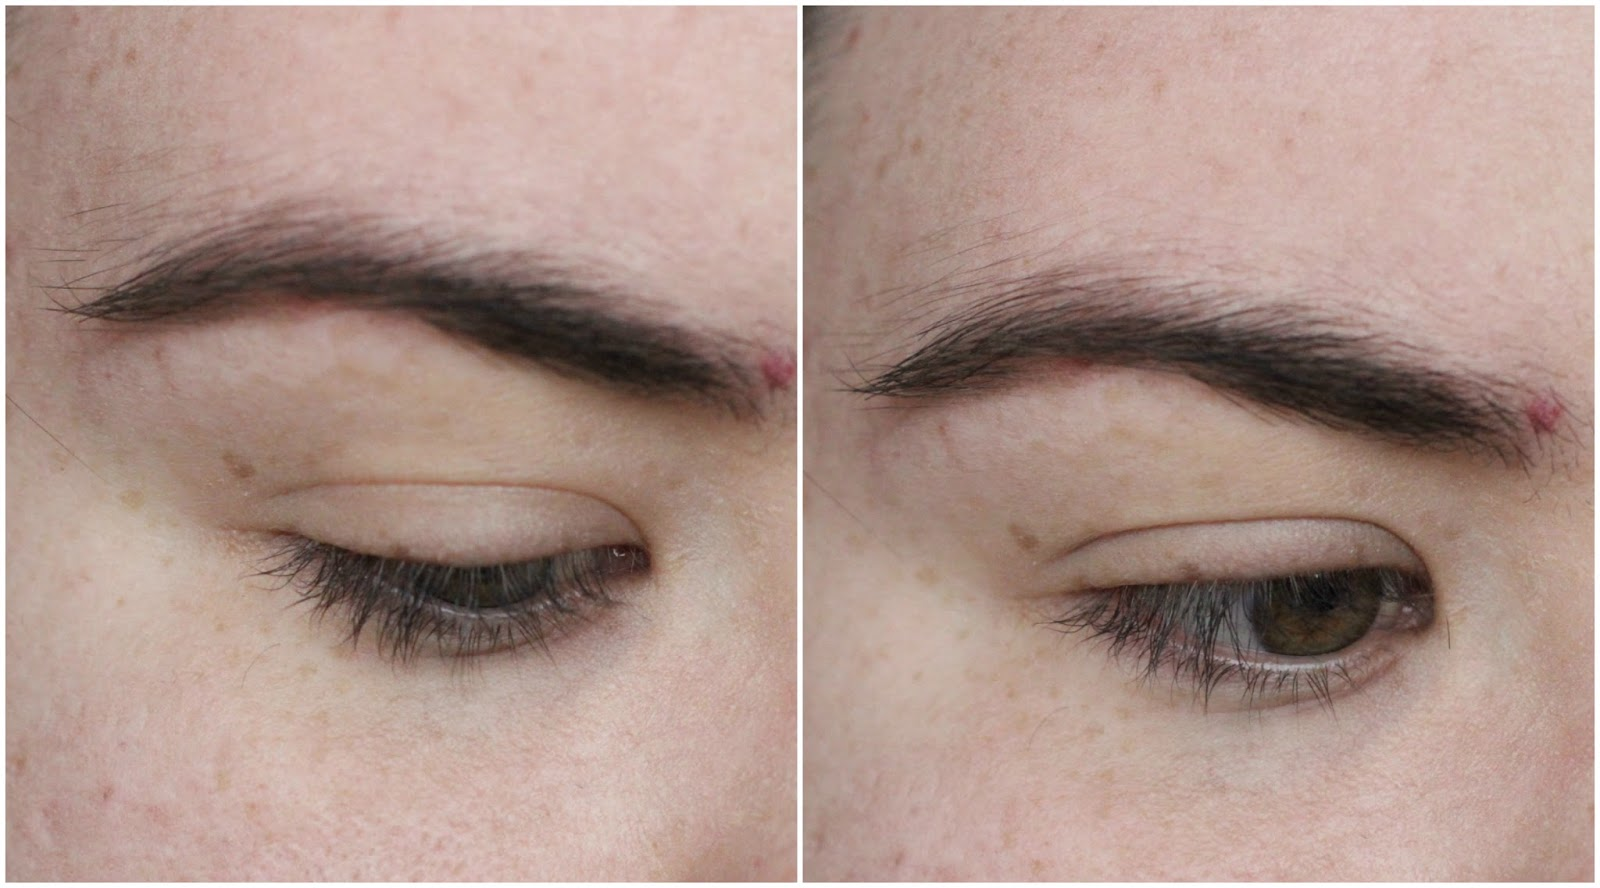 Makeup Forever Pro Sculpting Brow 3 in 1 Brow Sculpting Pen Review